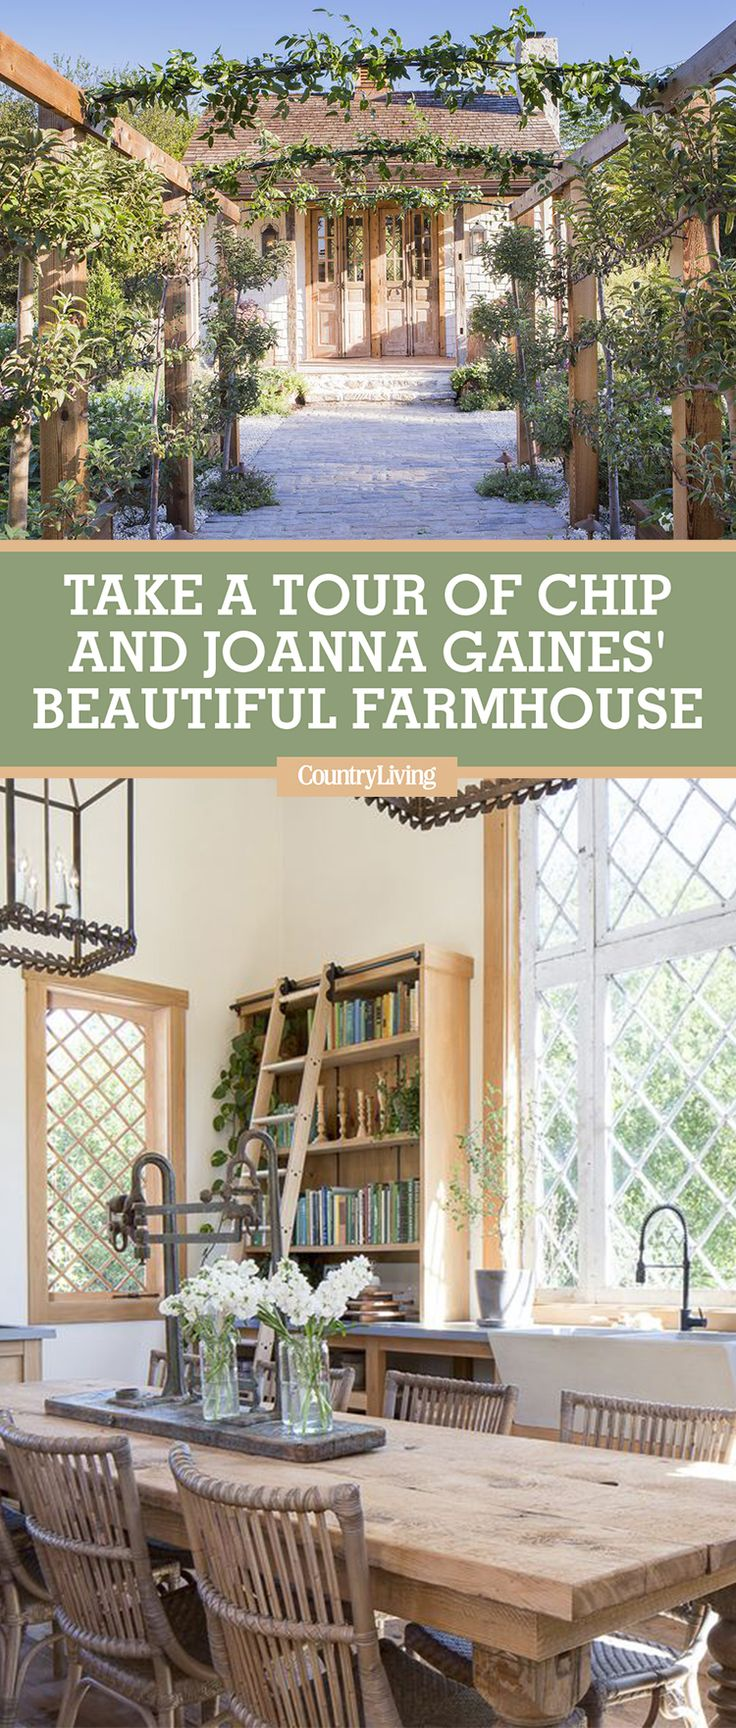 1862 best chip and joanna gaines fixer upper images on for Garden shed fixer upper